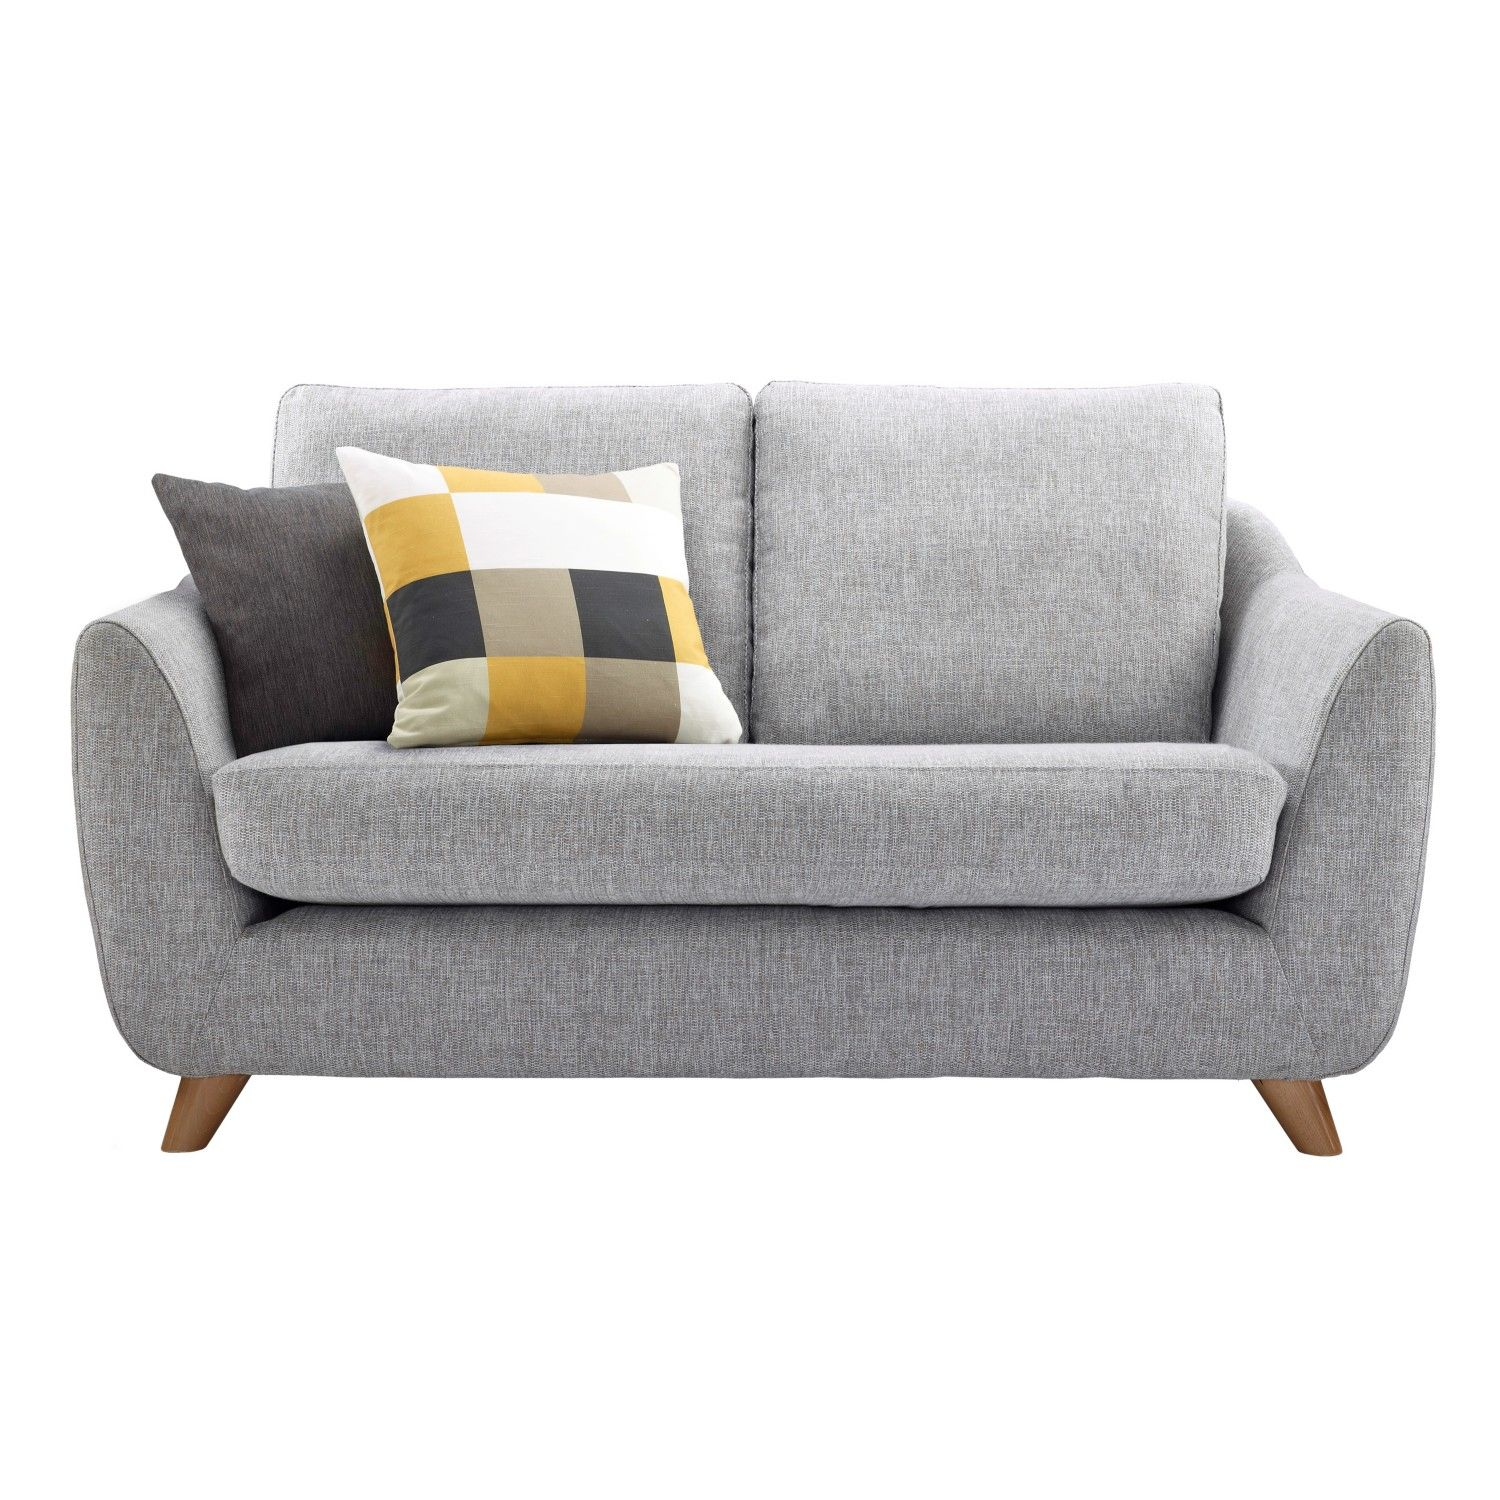 small couch loveseats for small spaces | cheap small sofa decoration : fascinating QUGUACB